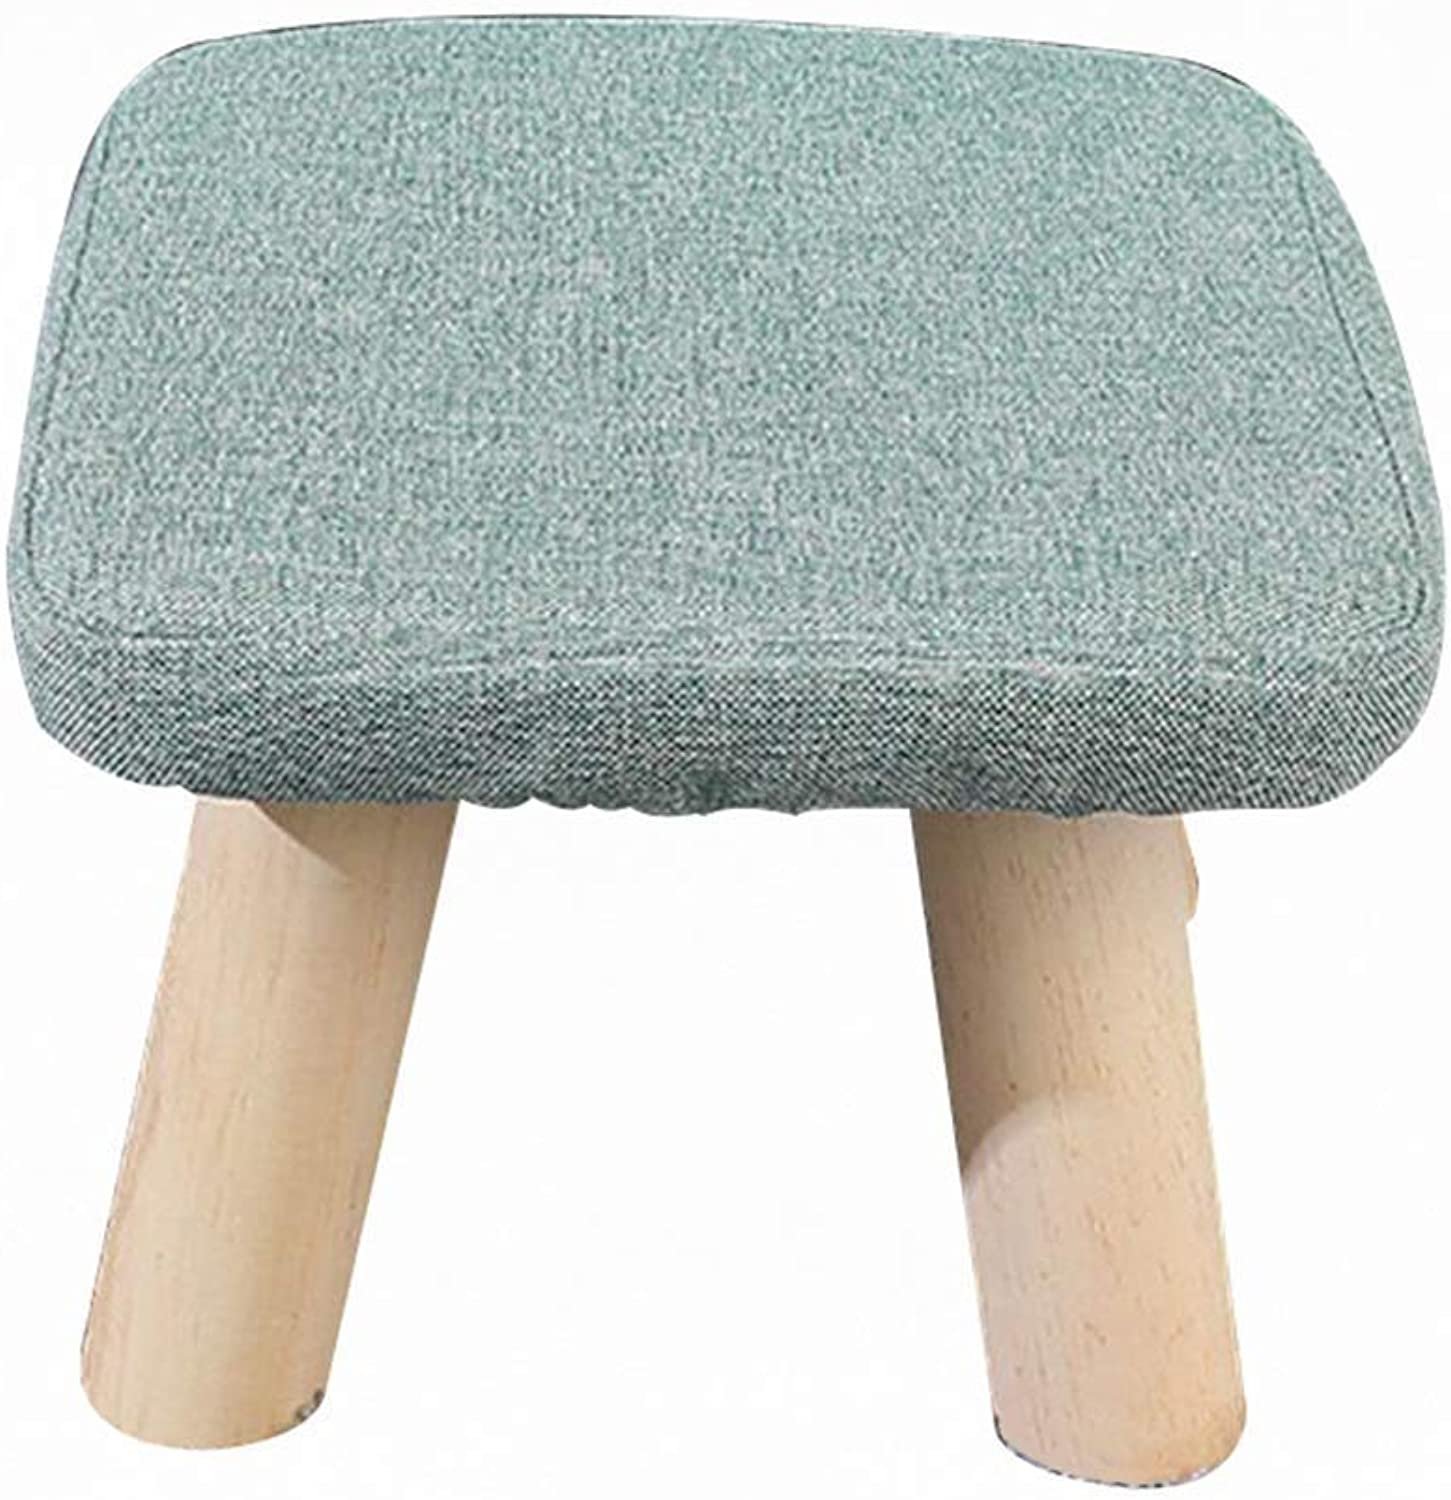 ZDYUY Square Wooden Wood Support Pouffe Chair Stool Fabric Cover 4 Legs (color   C)